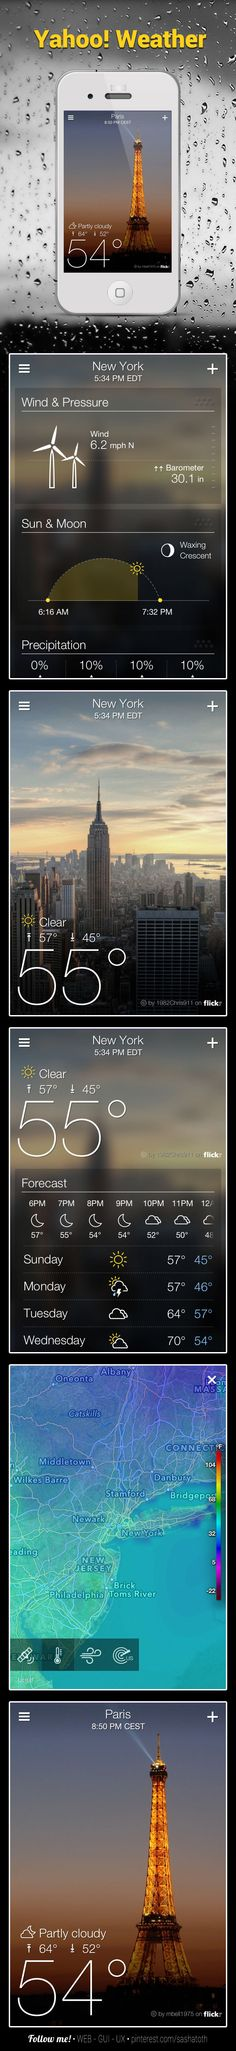 WEATHER *** Yahoo has launched a new standalone iPhone weather app called Yahoo! Weather, along with an upgraded version of its Yahoo! Mail app that brings the native mail app experience to the iPad. source:macrumors *** This is an awesome app! Mobile Web Design, Web Ui Design, Flat Design, Yahoo Weather App, Ui Web, User Interface Design, Web Design Inspiration, Ipad, Weather Update